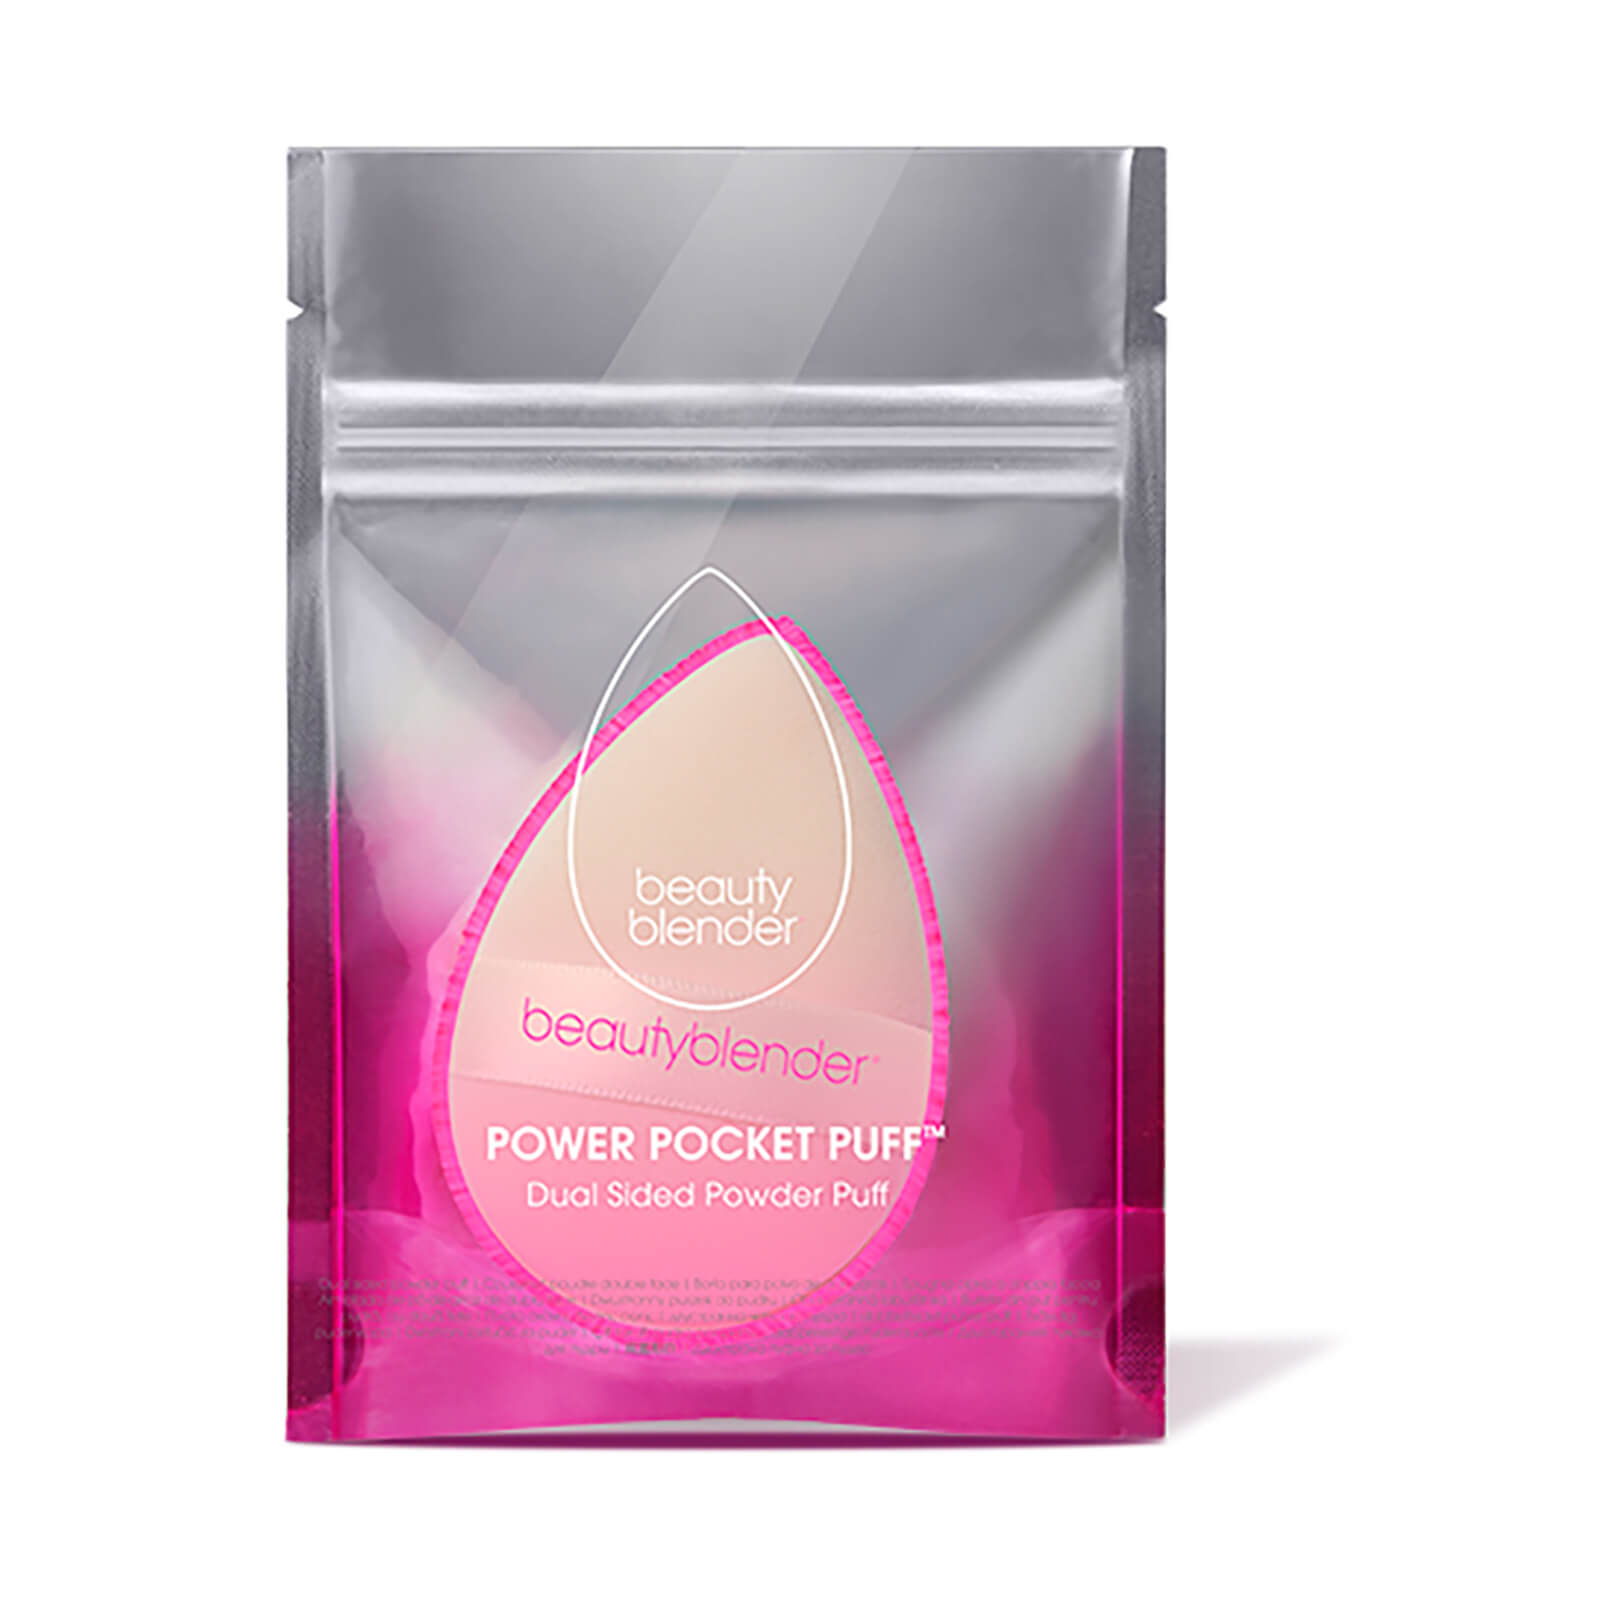 beautyblender Power Pocket Dual Sided Powder Puff